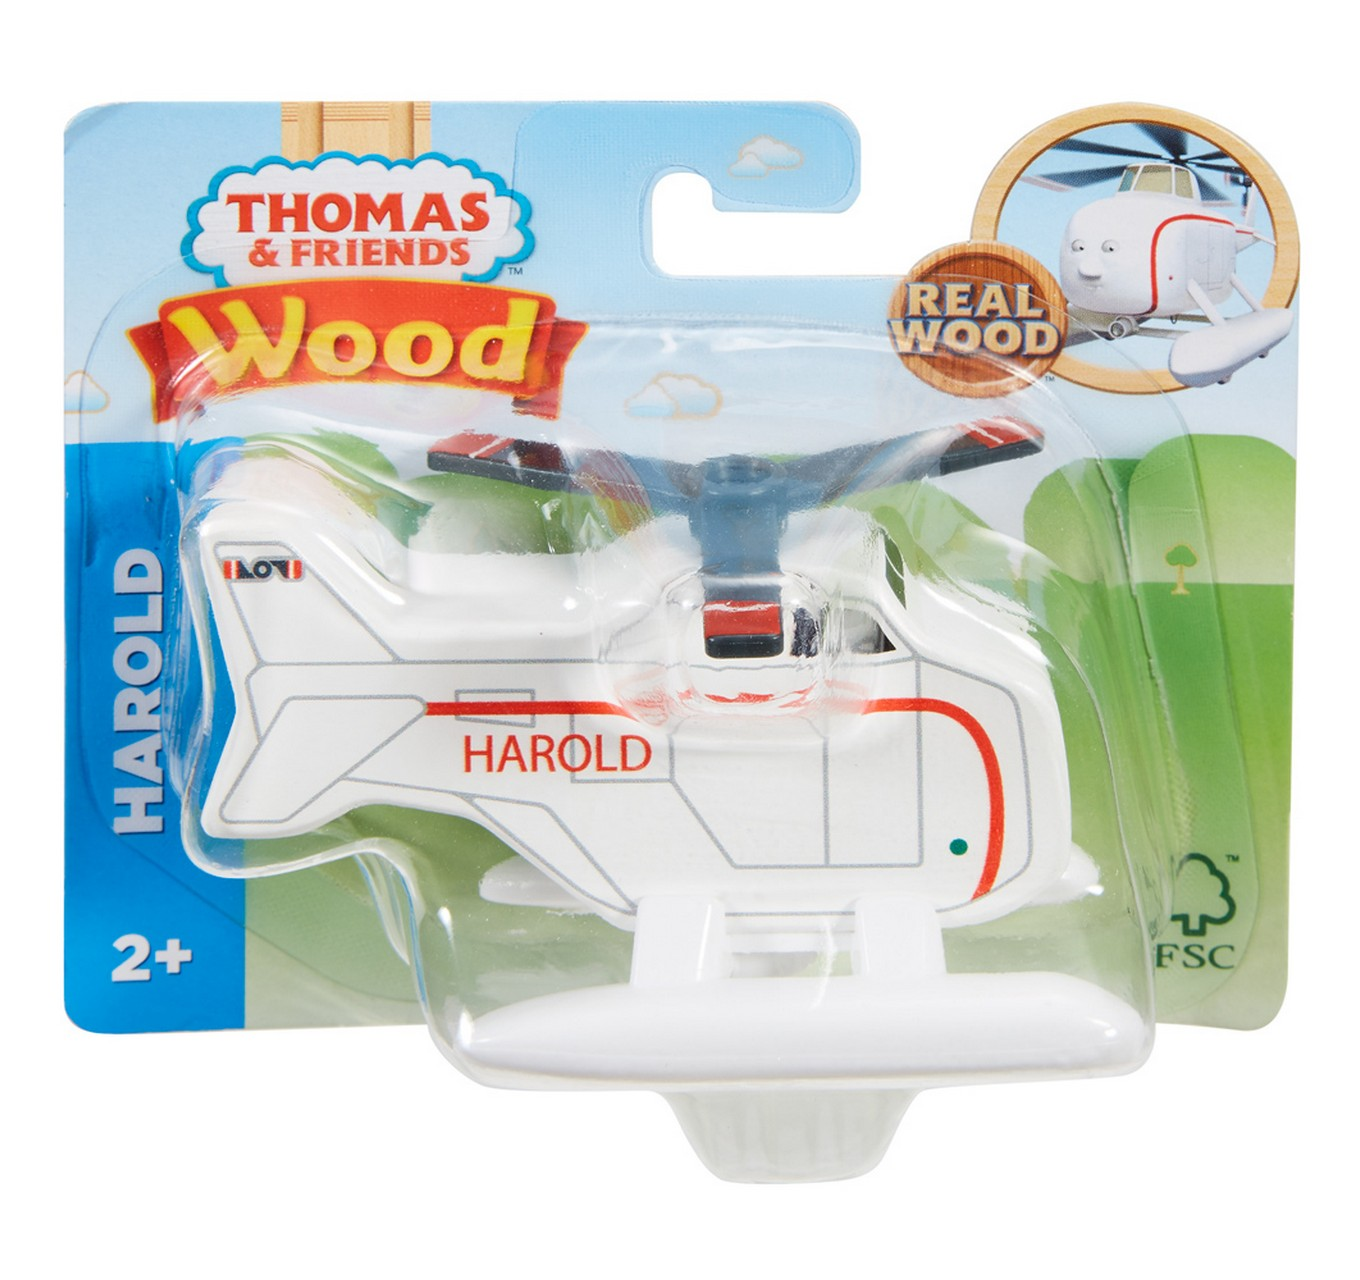 Harold Wooden Helicopter